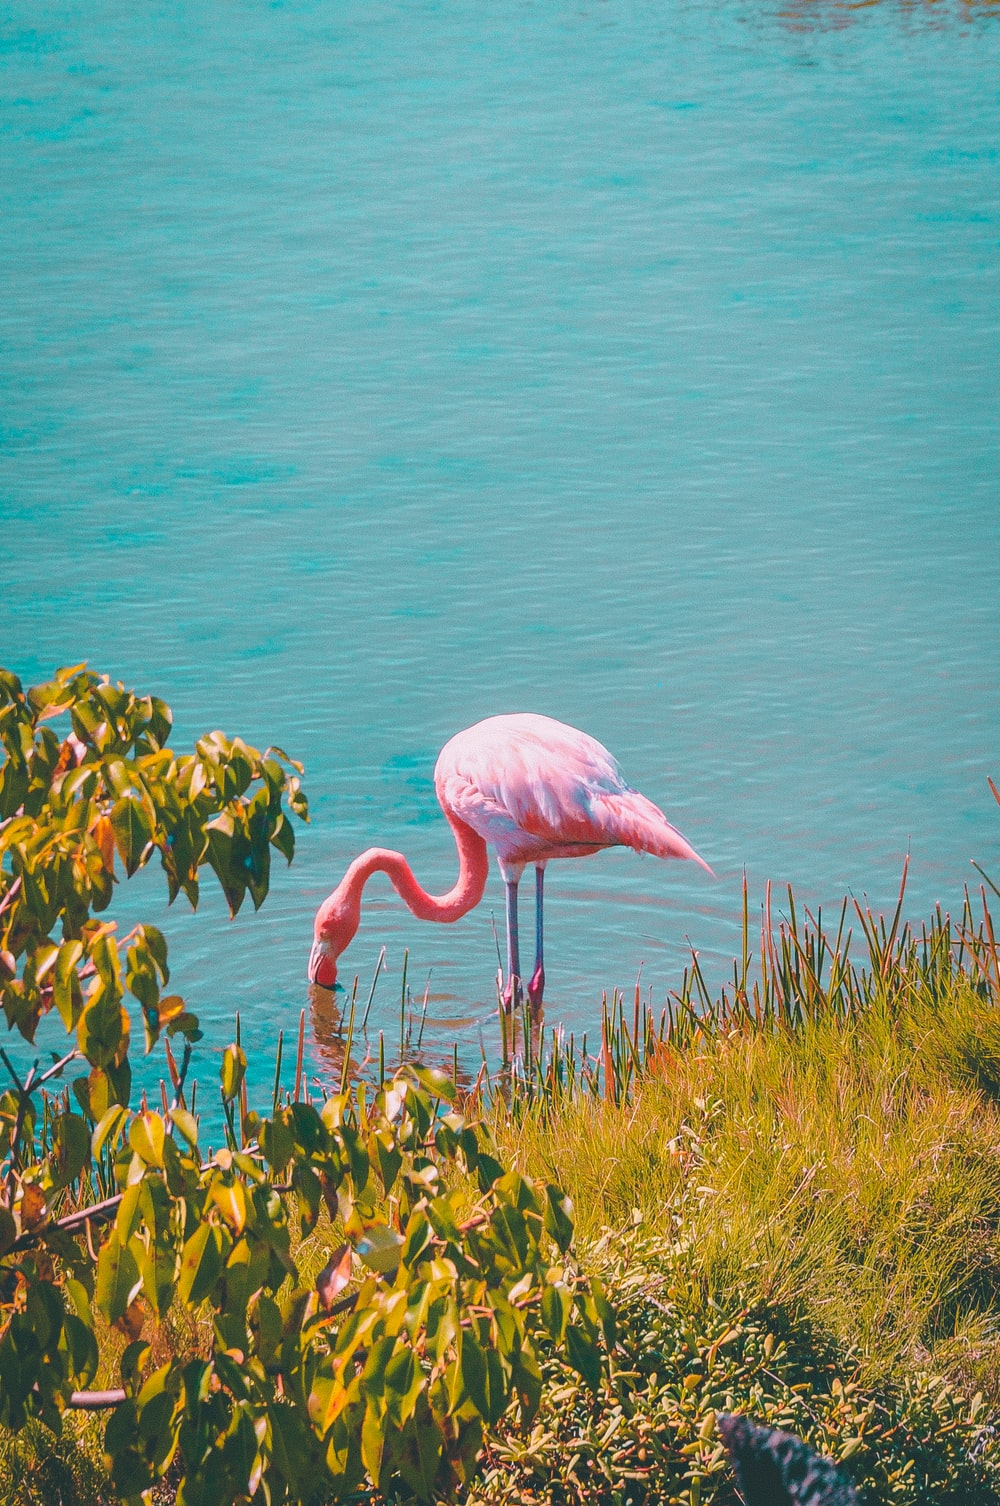 pink flamingo near grass field